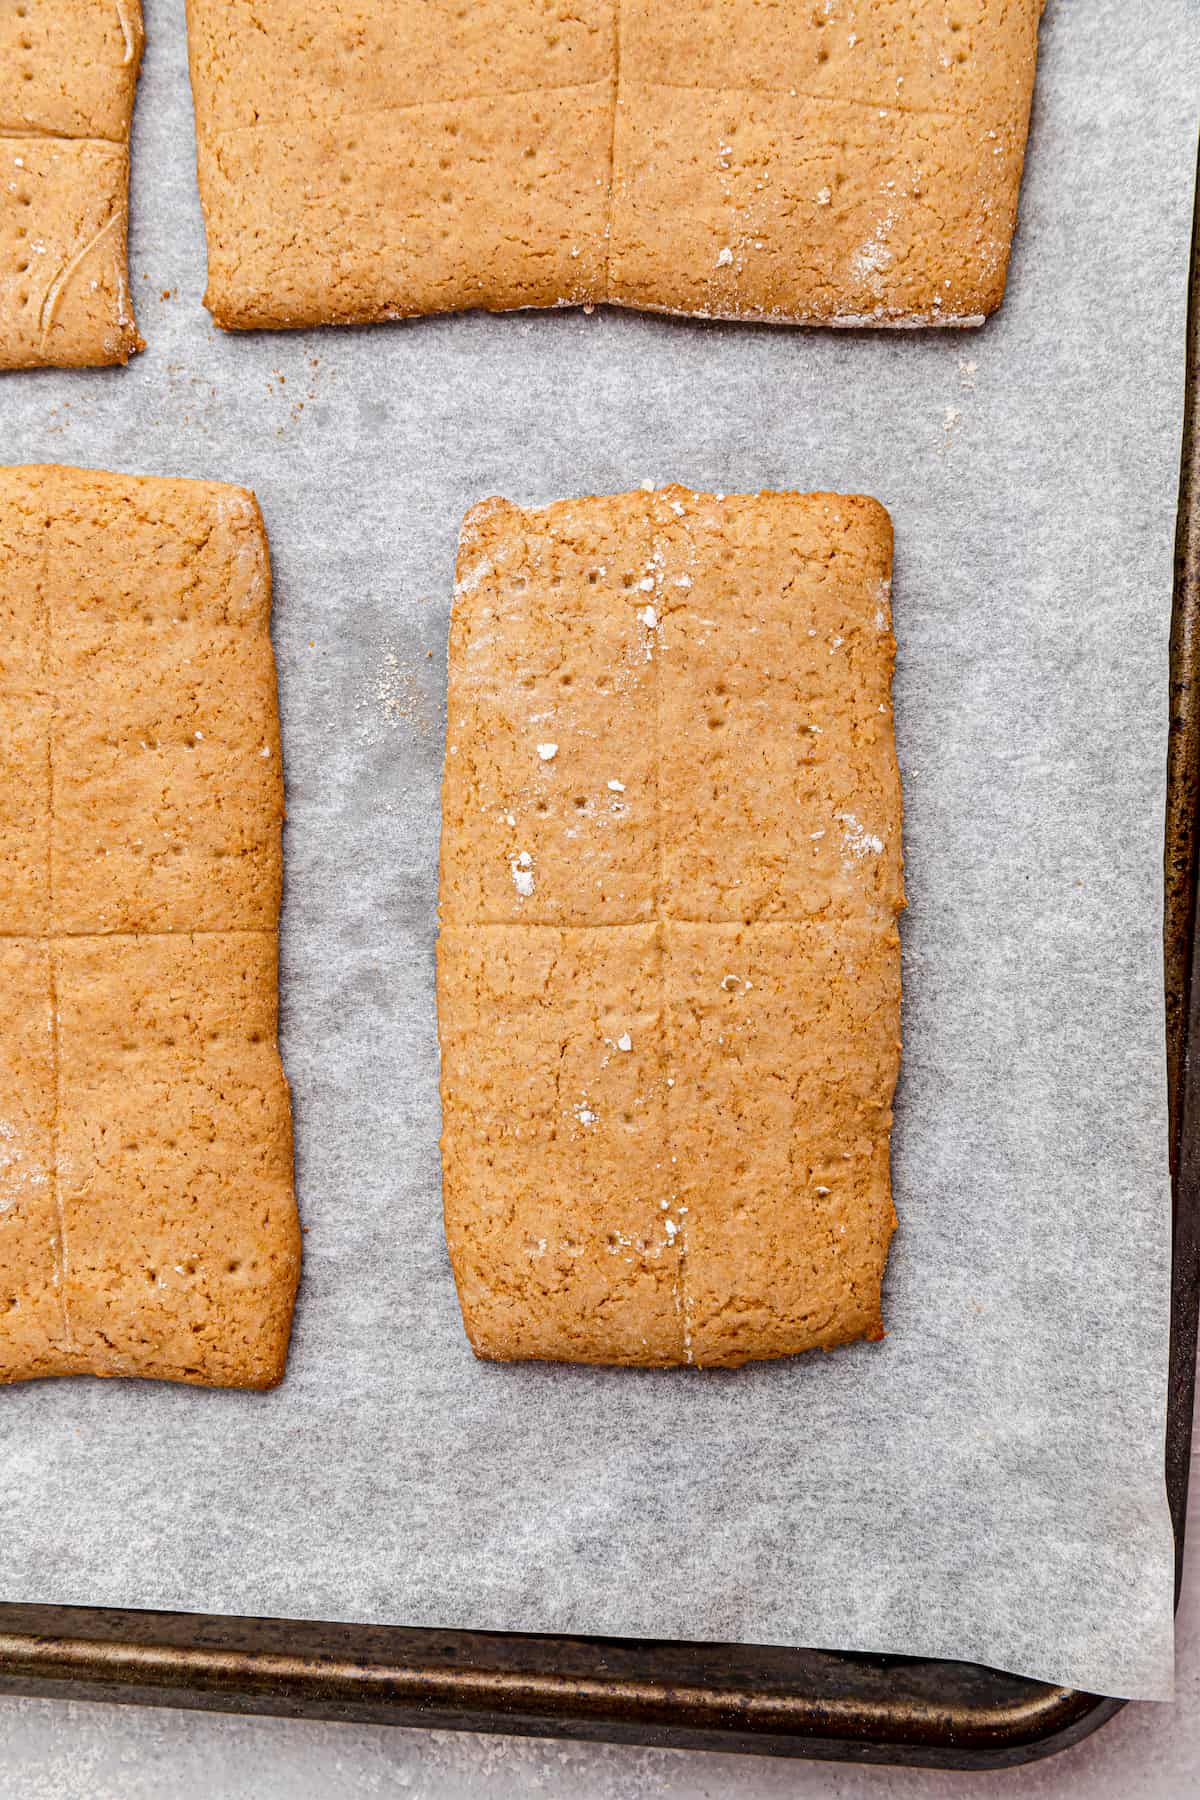 baked graham crackers on a parchment-lined baking sheet